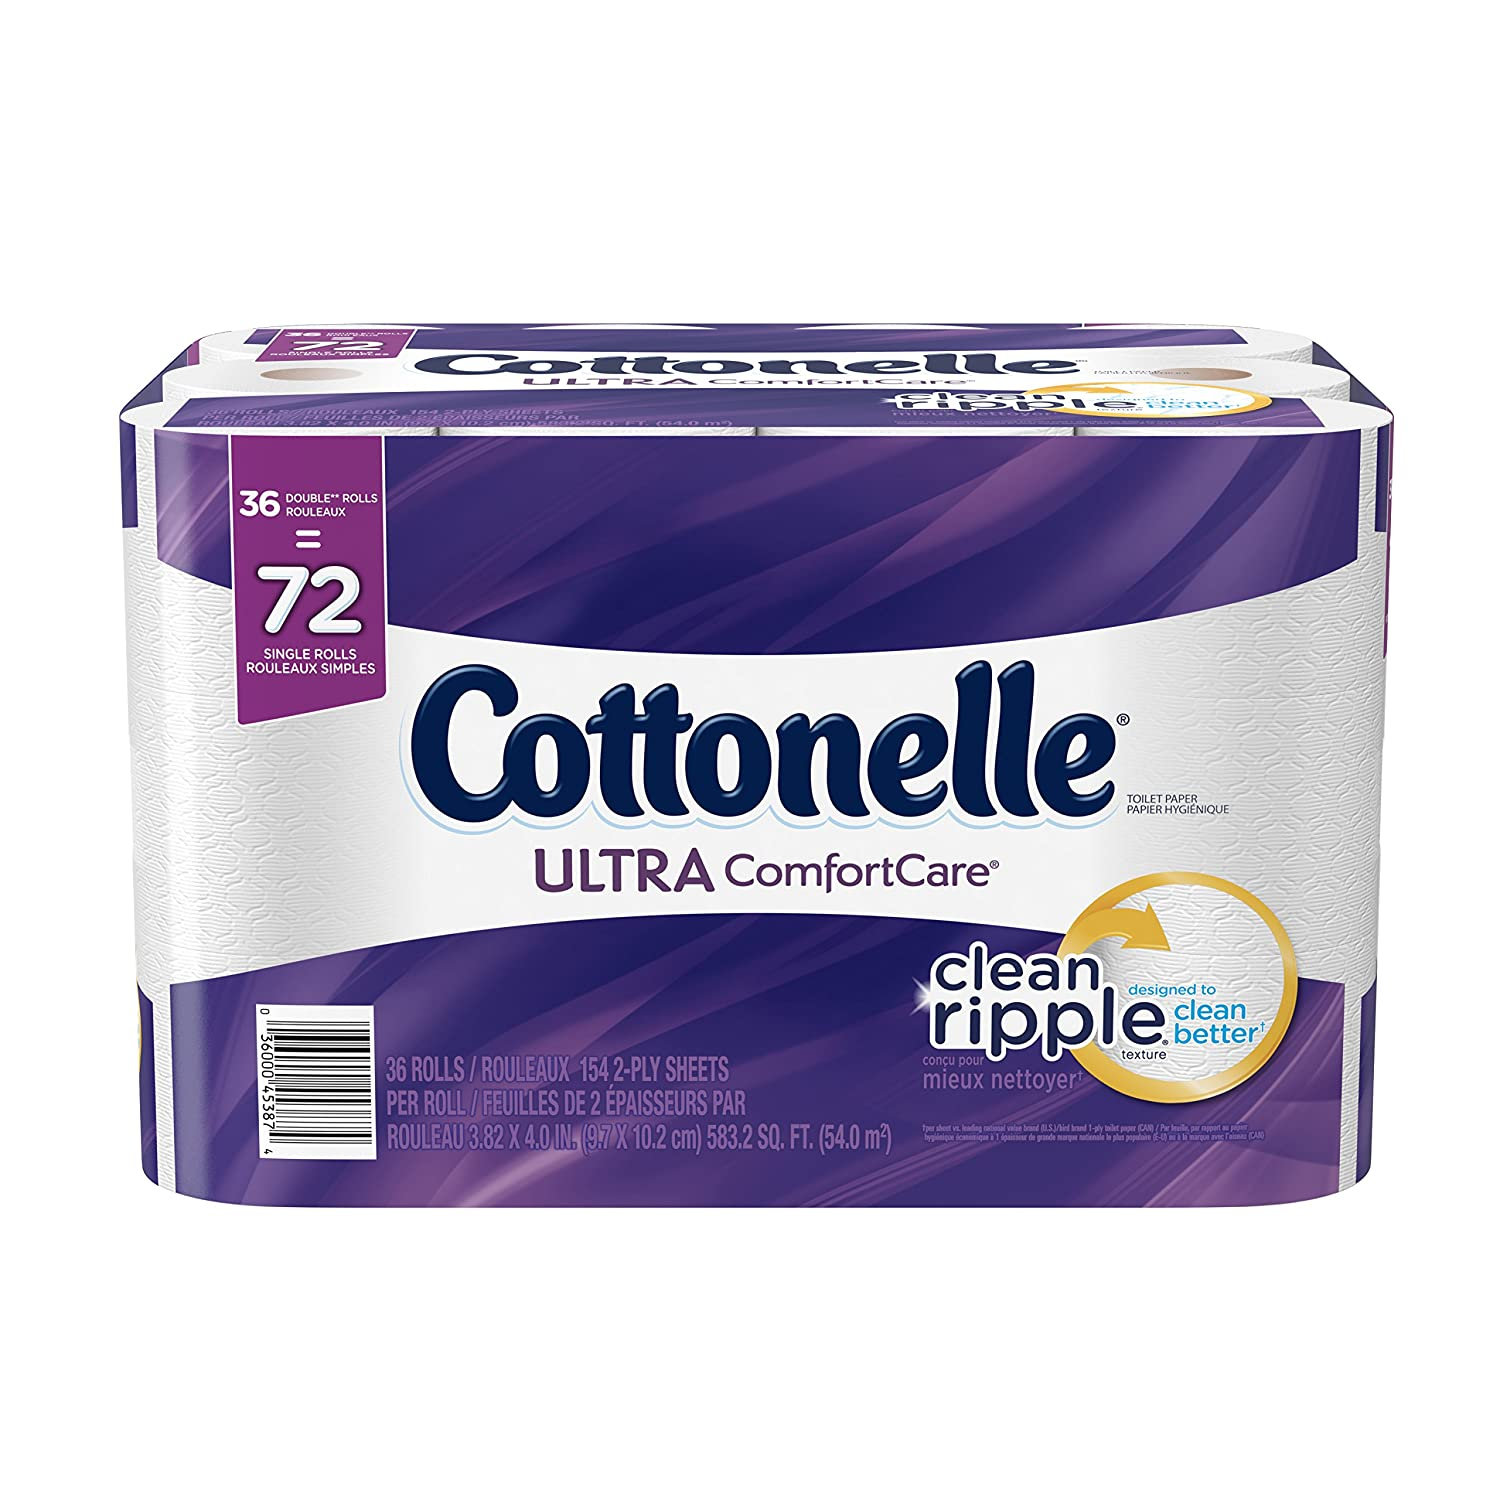 $14.97(was $28.49) Cottonelle Ultra Comfort Care Double Roll Bath Tissue, 36 Count